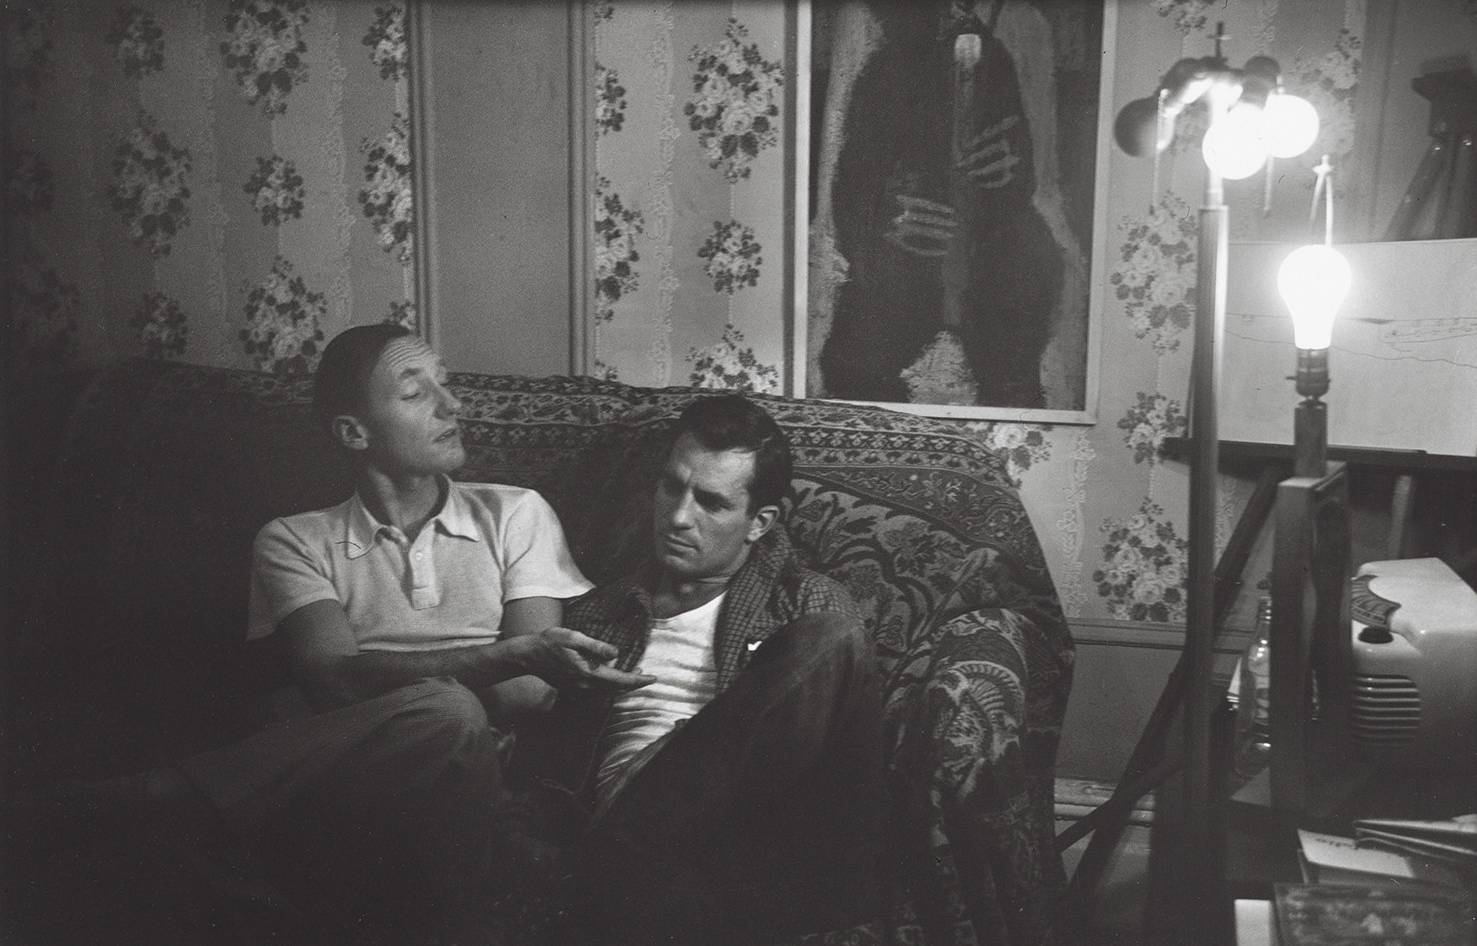 beat generacion perdida william burroughs y jack kerouac